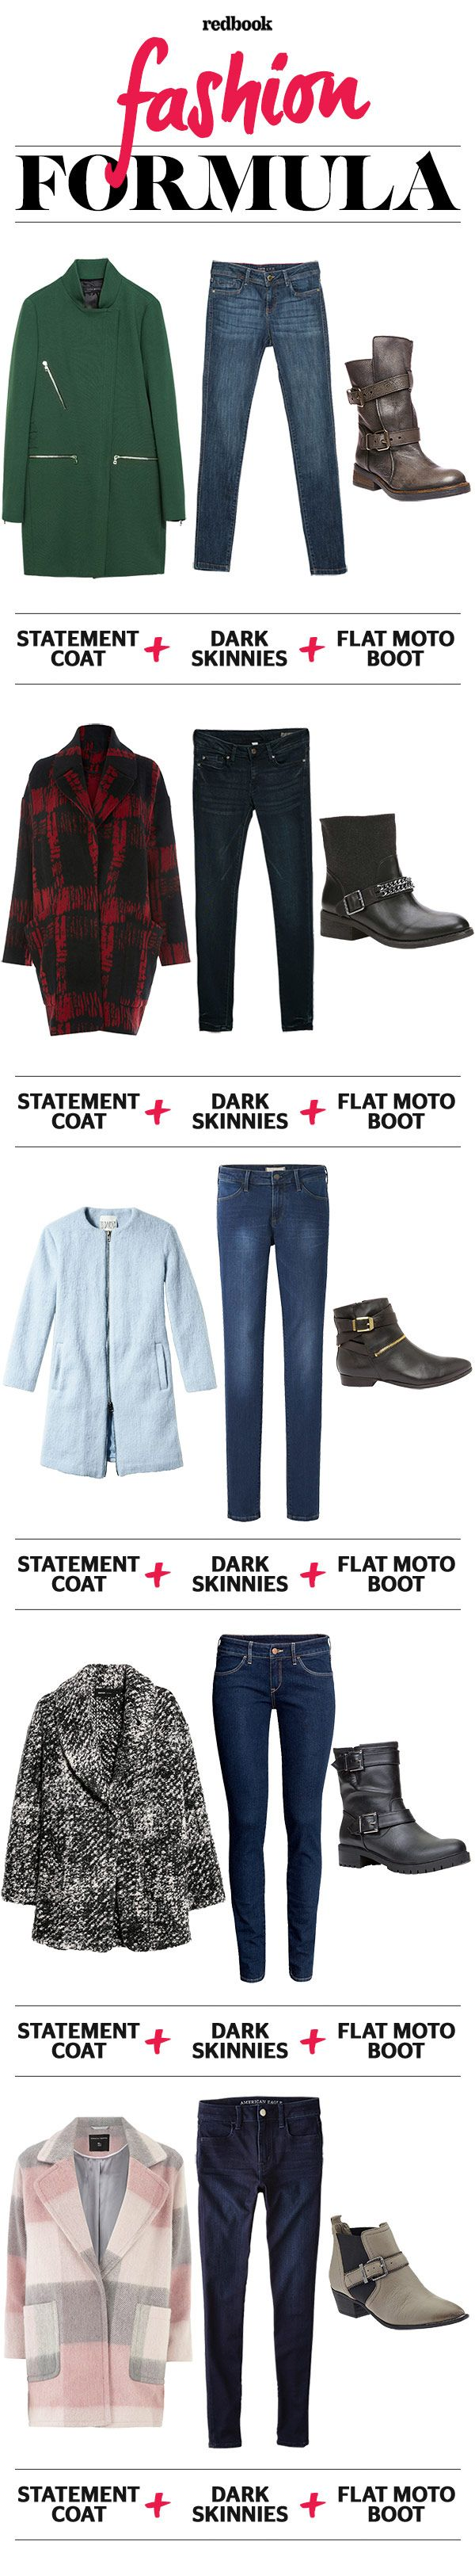 Statement Coat, Skinny Jeans and Moto Boots - Winter Outfit Ideas - Redbook